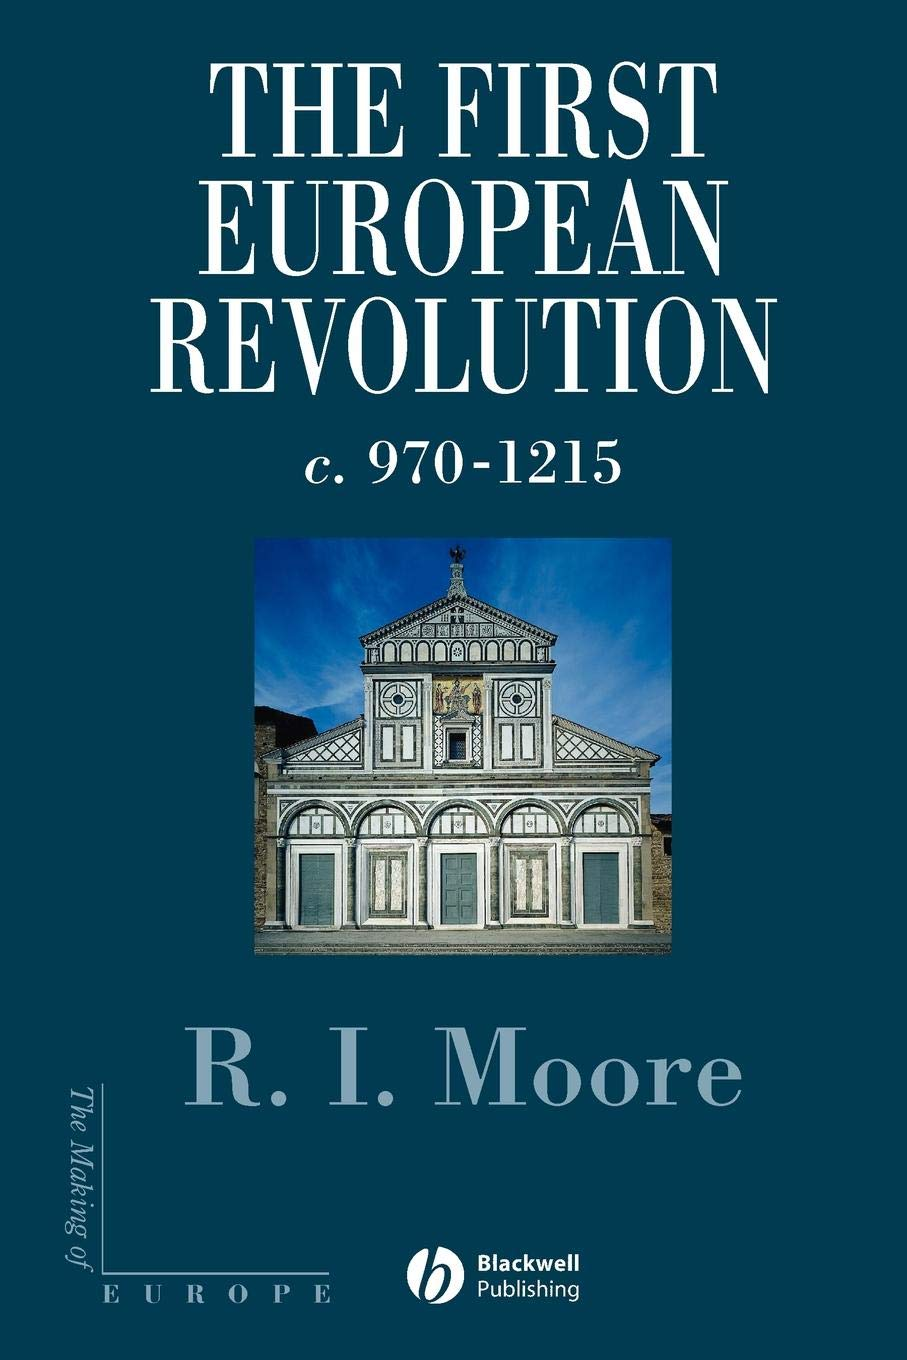 The First European Revolution: c. 970-1215 (The Making of Europe) by Blackwell Publishing